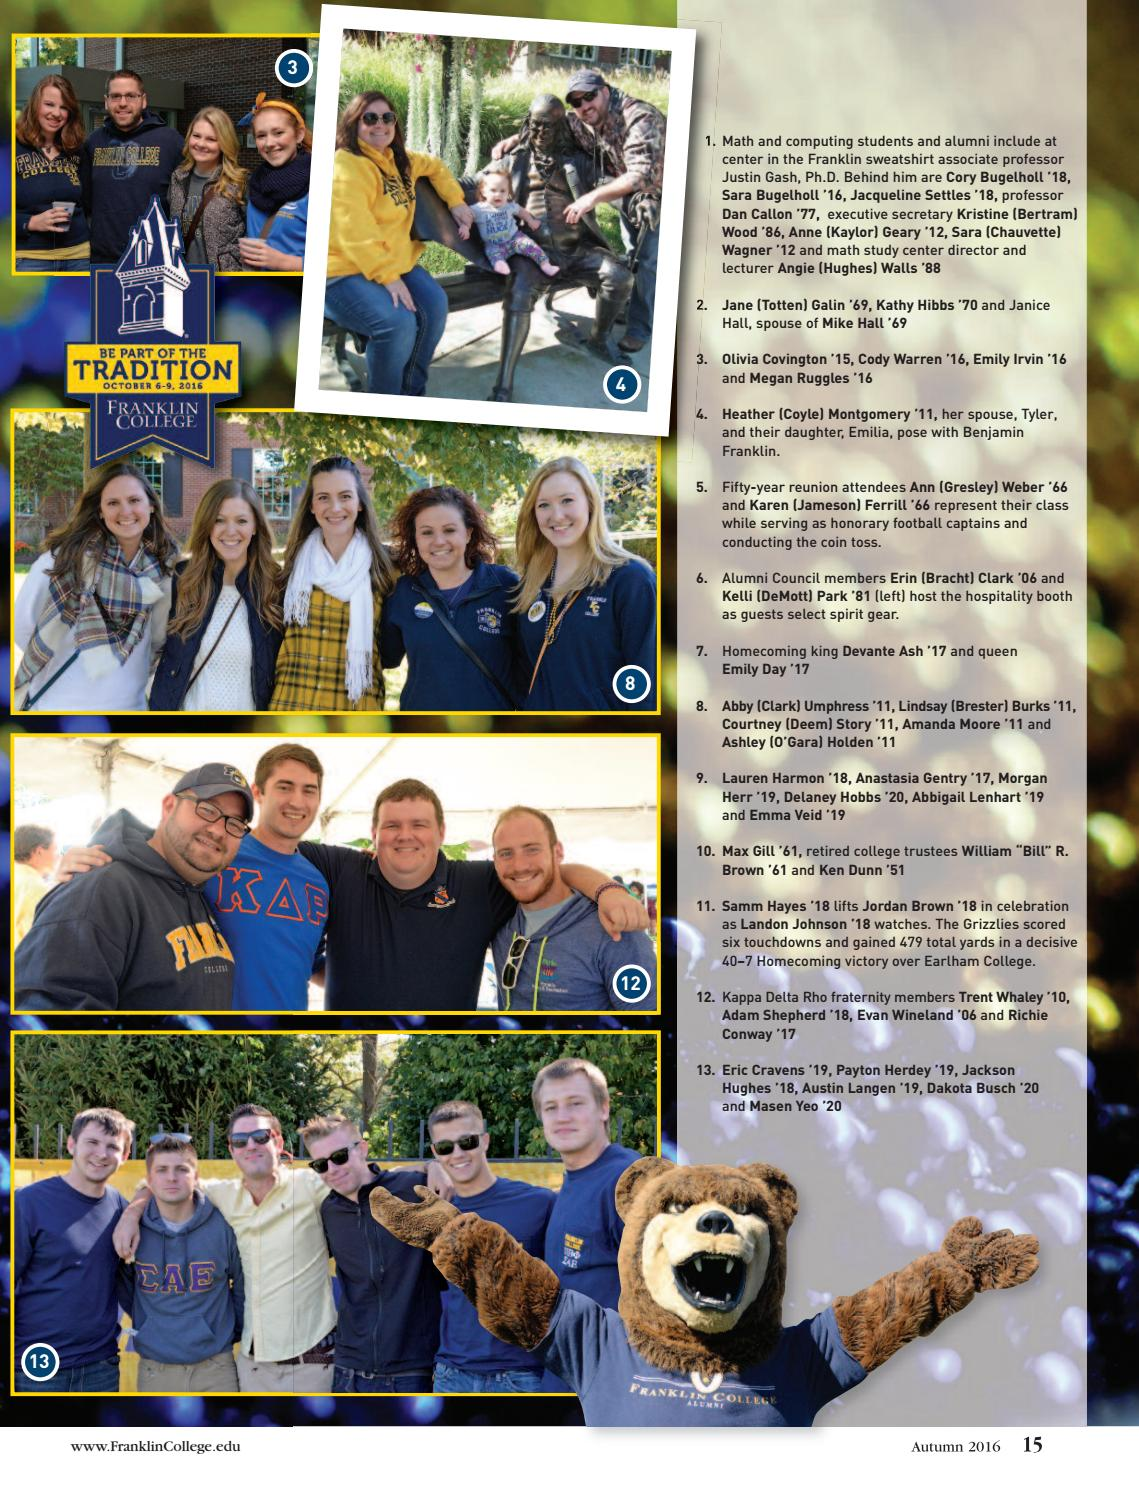 Franklin College Magazine Autumn 2016 by Franklin College